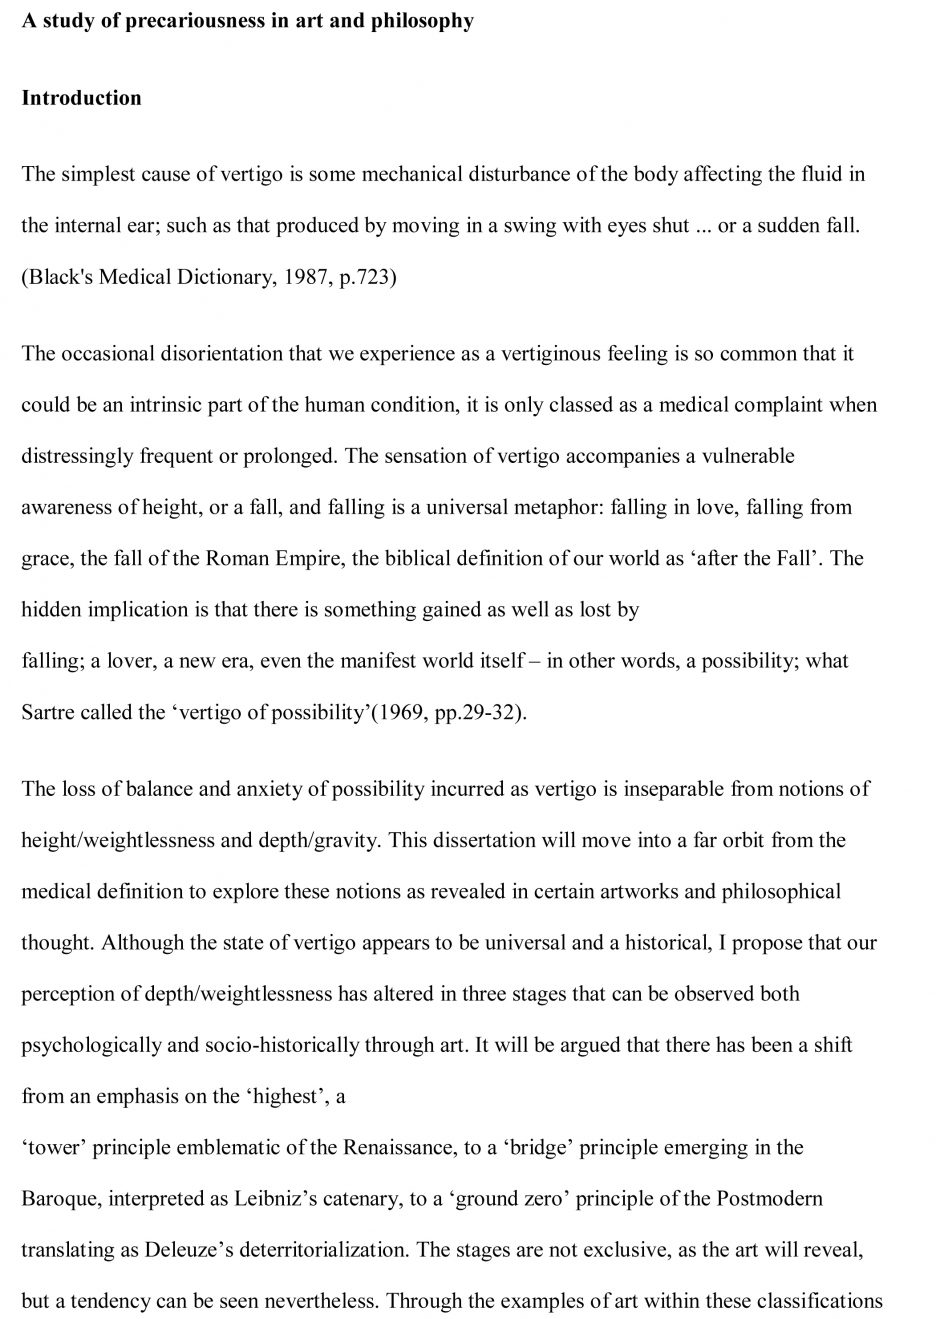 016 Hard Work Essay The Key Success Art Coursework Sample Essays On In Hindi Is To Wikipedia Pays Off Brings Students Life Always Role Of And Dedication 936x1319 Wonderful Pdf Writing Full